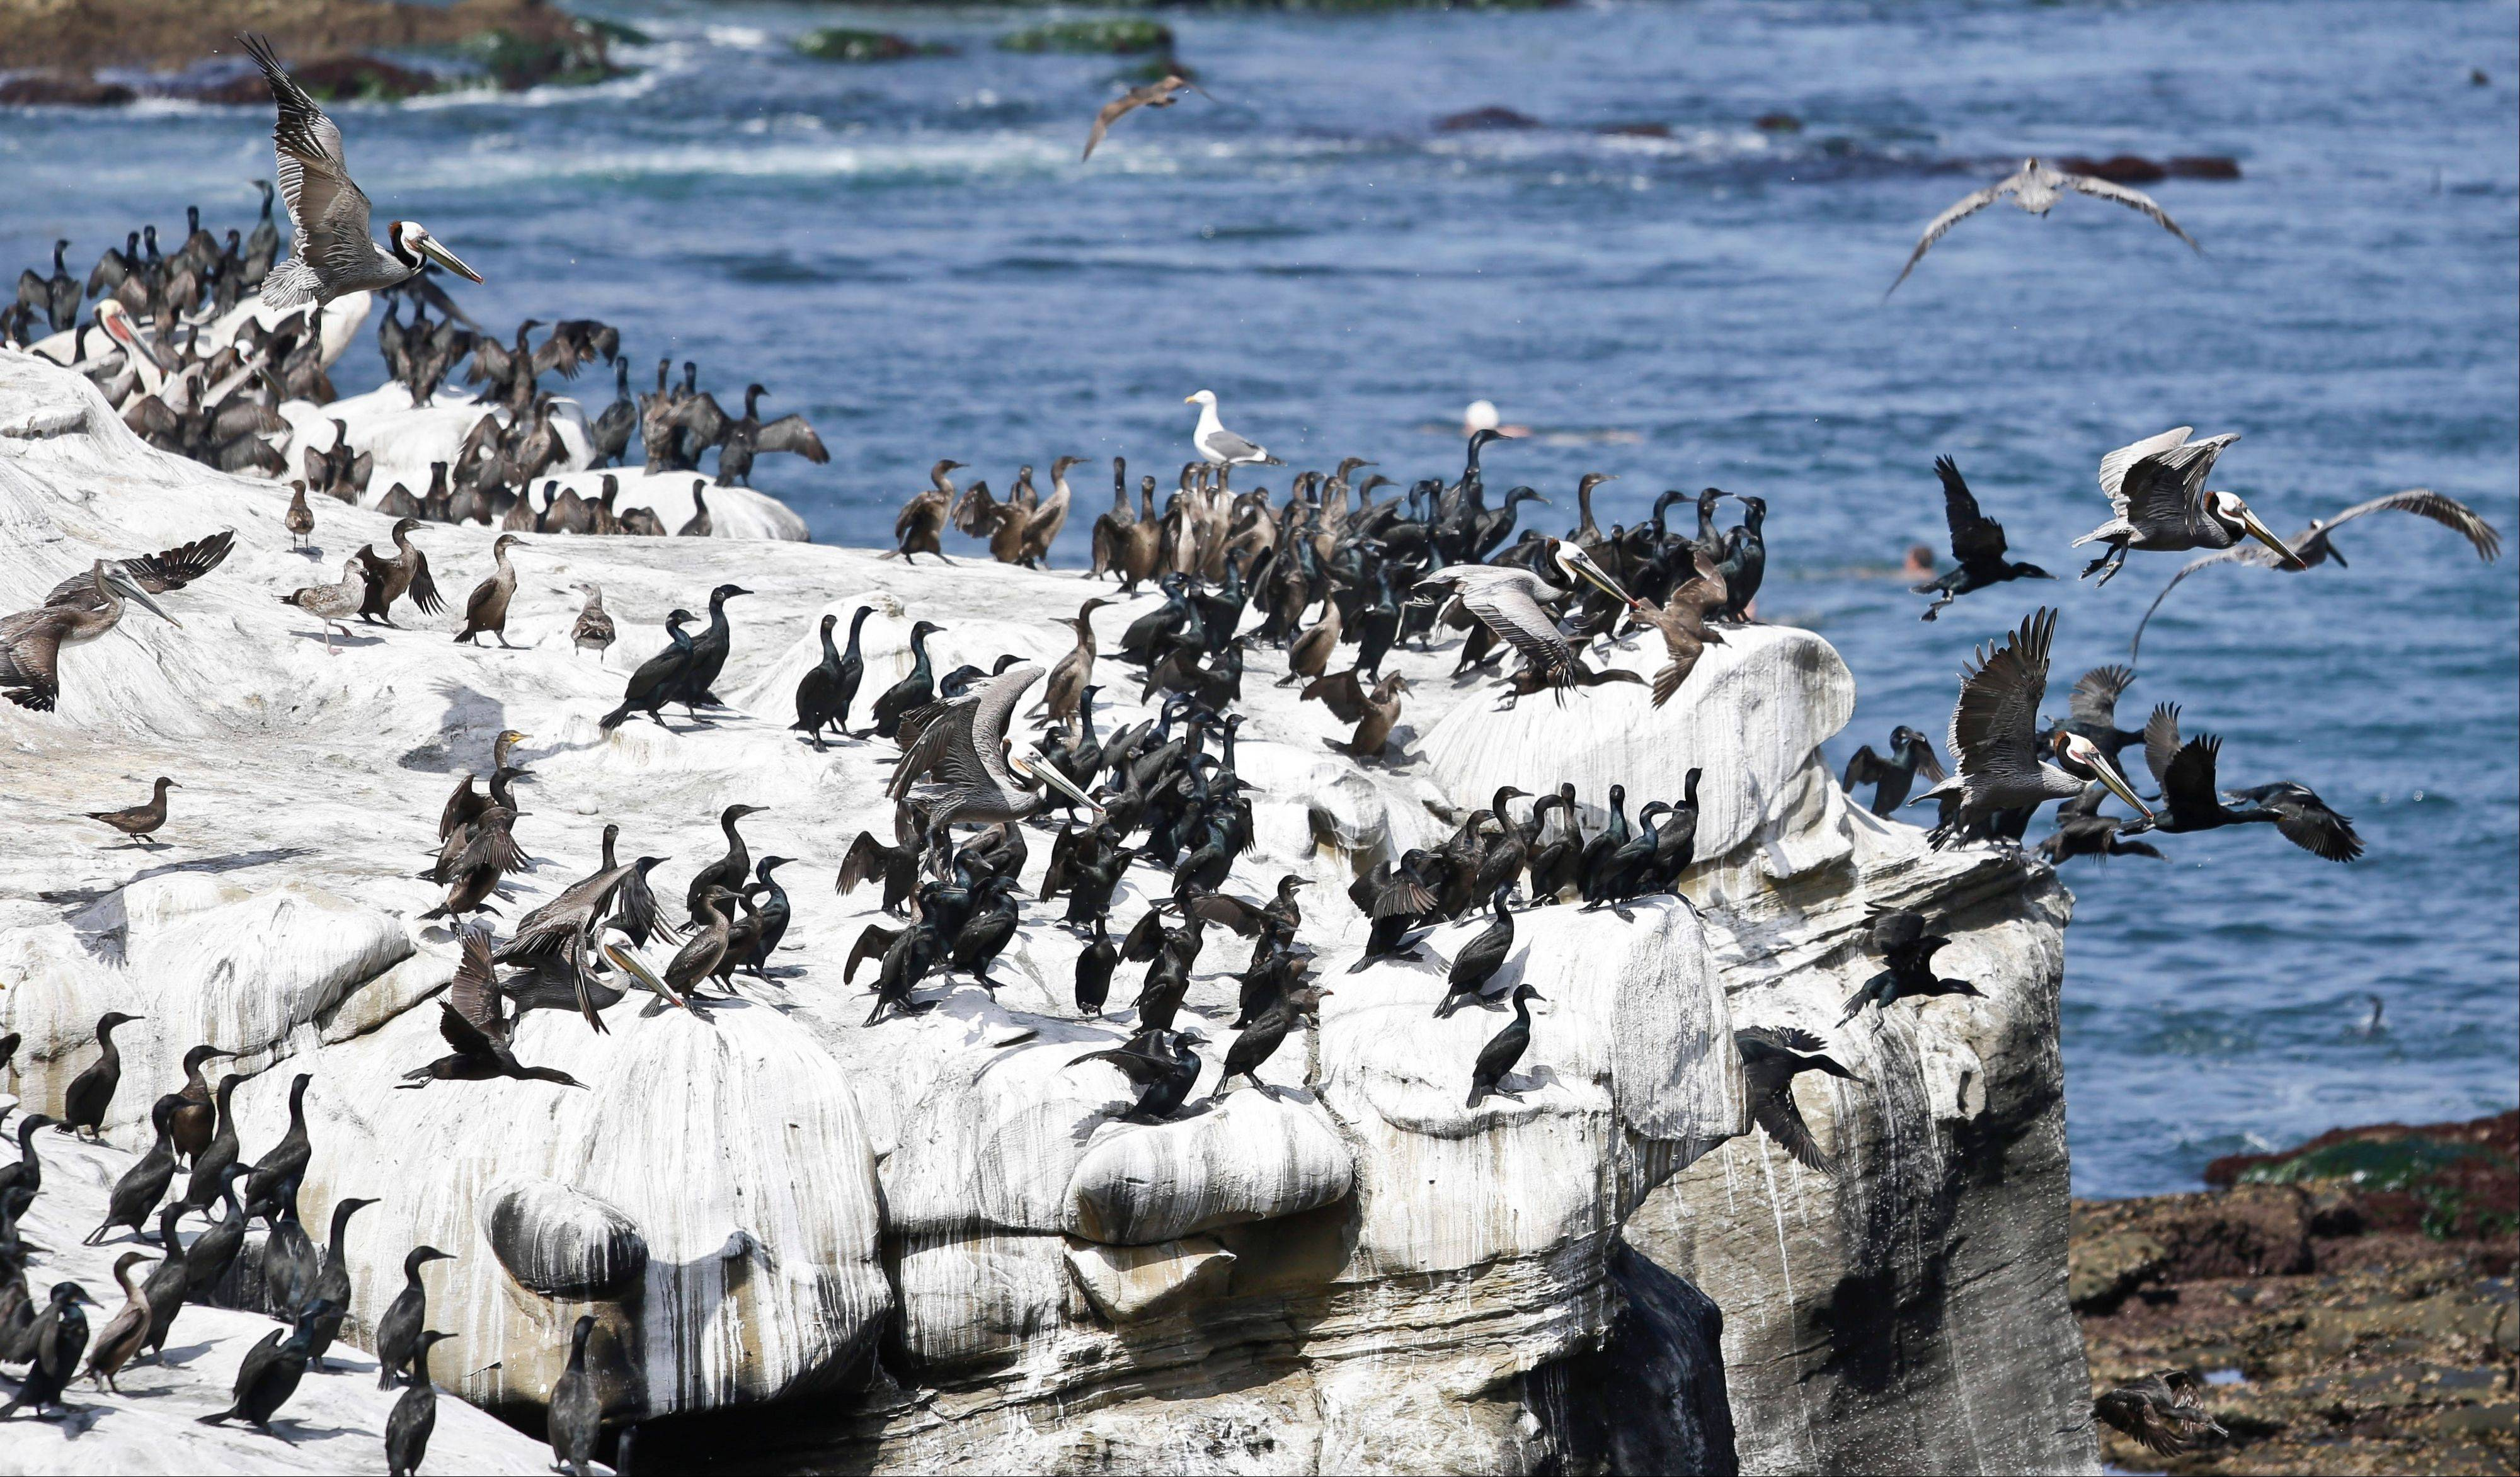 Pelicans and cormorants gather on the cliffs above the cove in the affluent La Jolla section of San Diego. The birds have turned the cliffs white with their droppings and caused a stench in the area that draws tourist to restaurants and hotels.